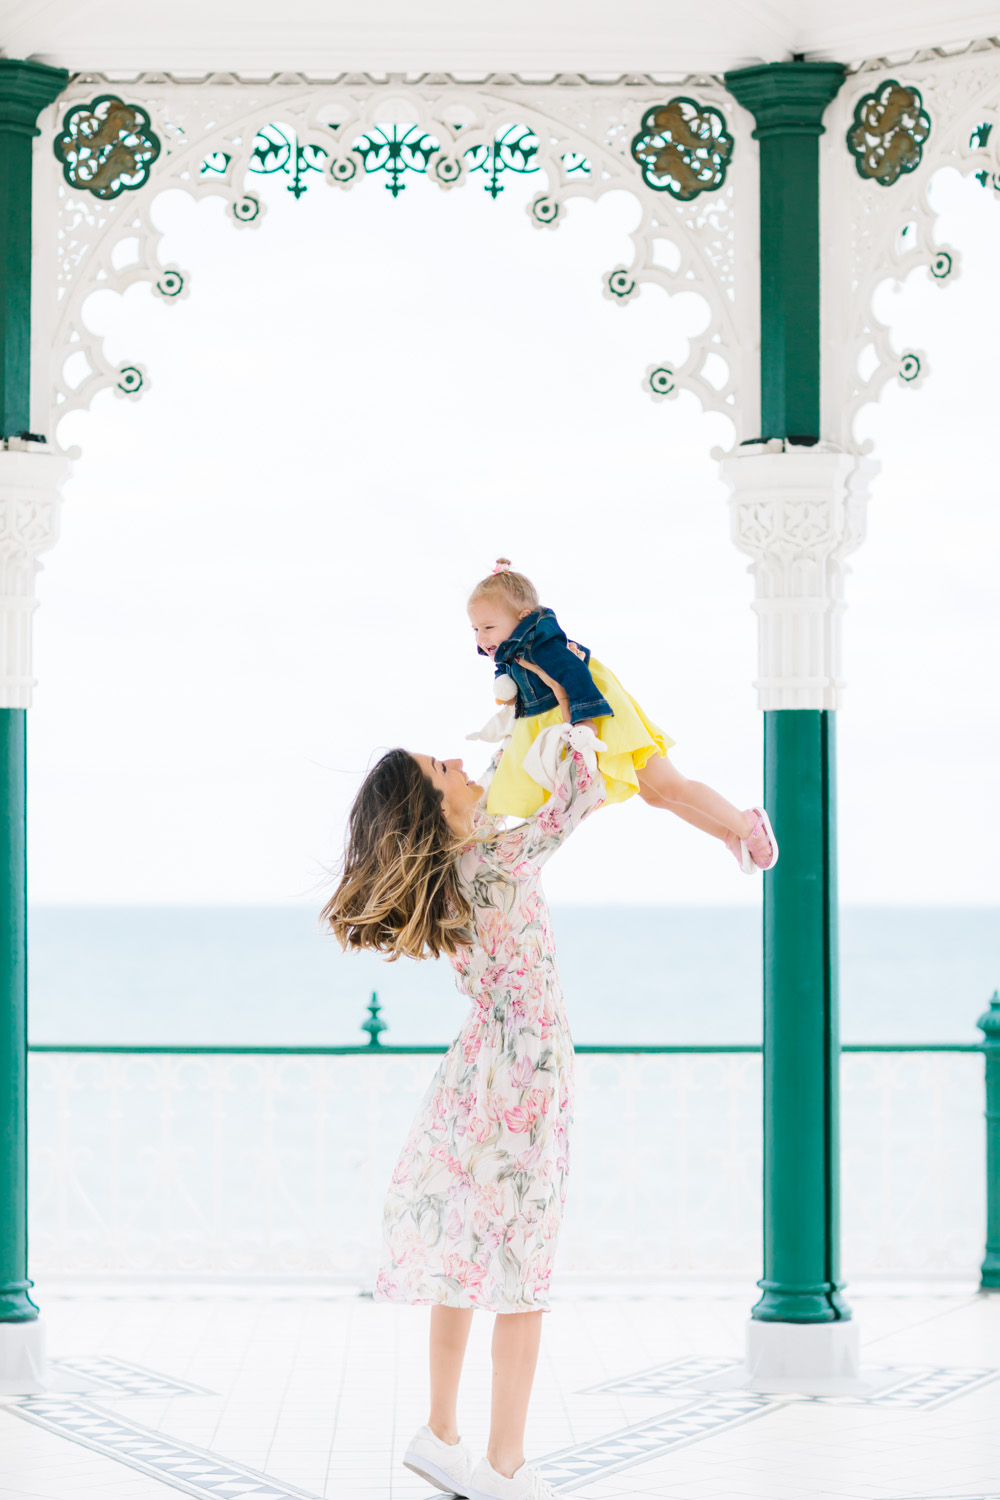 brighton_familysession-9.jpg